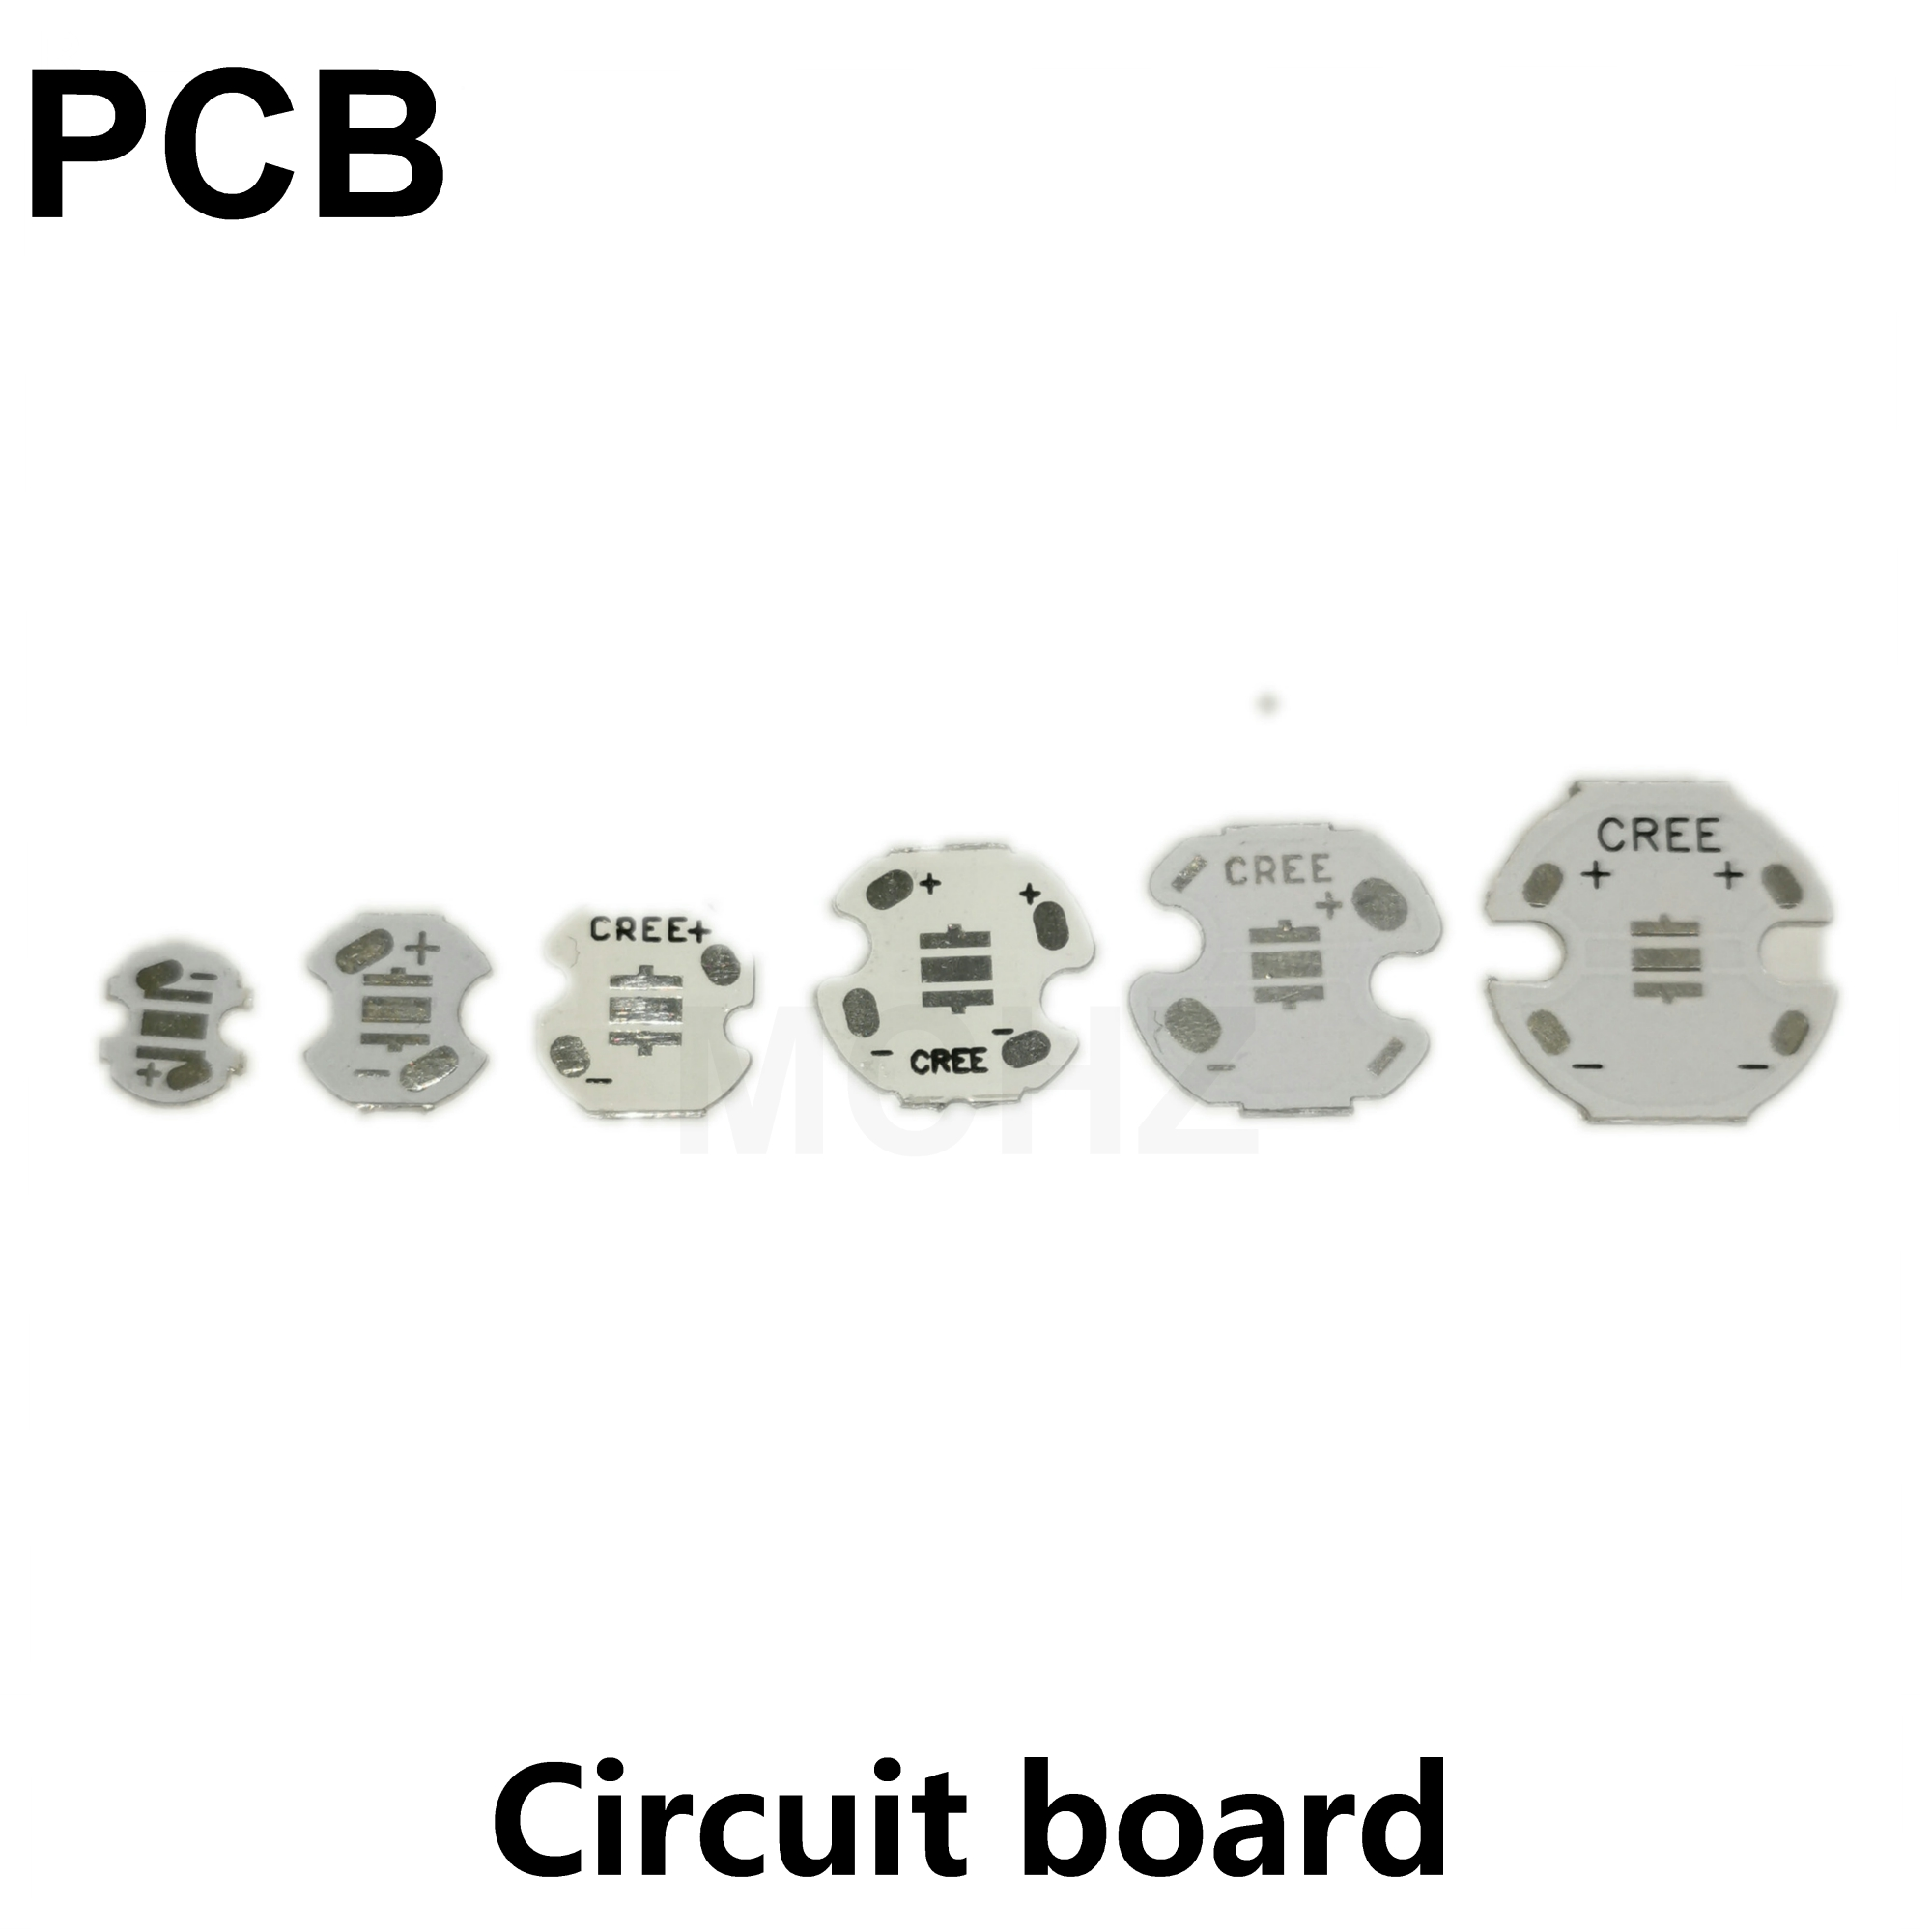 50pcs CREE 3535 5050 7070 ETI XTE XPG 20W LED Emitter Diode Can Replace Cree MKR MCE XHP50 XHP70 LED Light With 20mm PCB